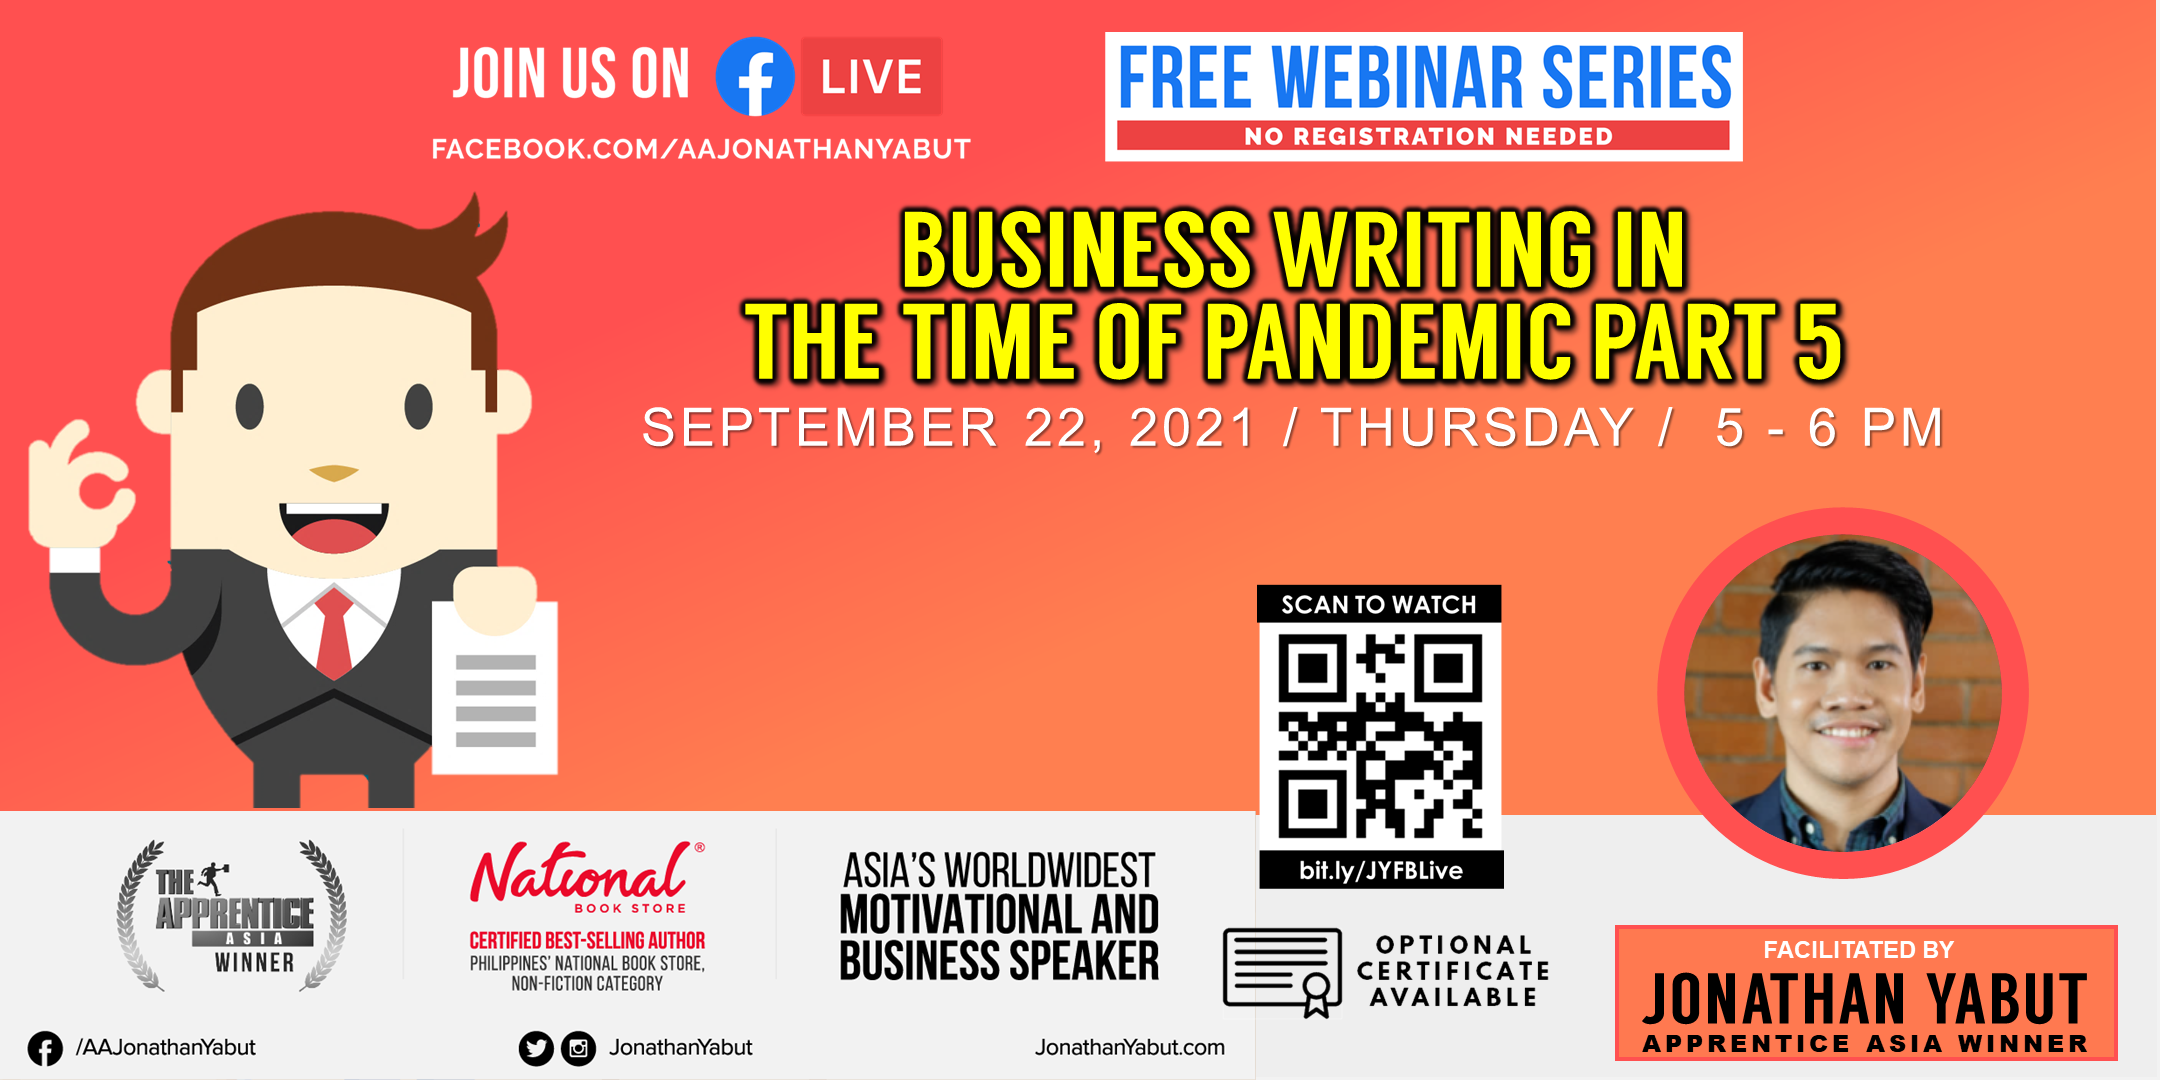 Business Writing in The Time of Pandemic, Part 5